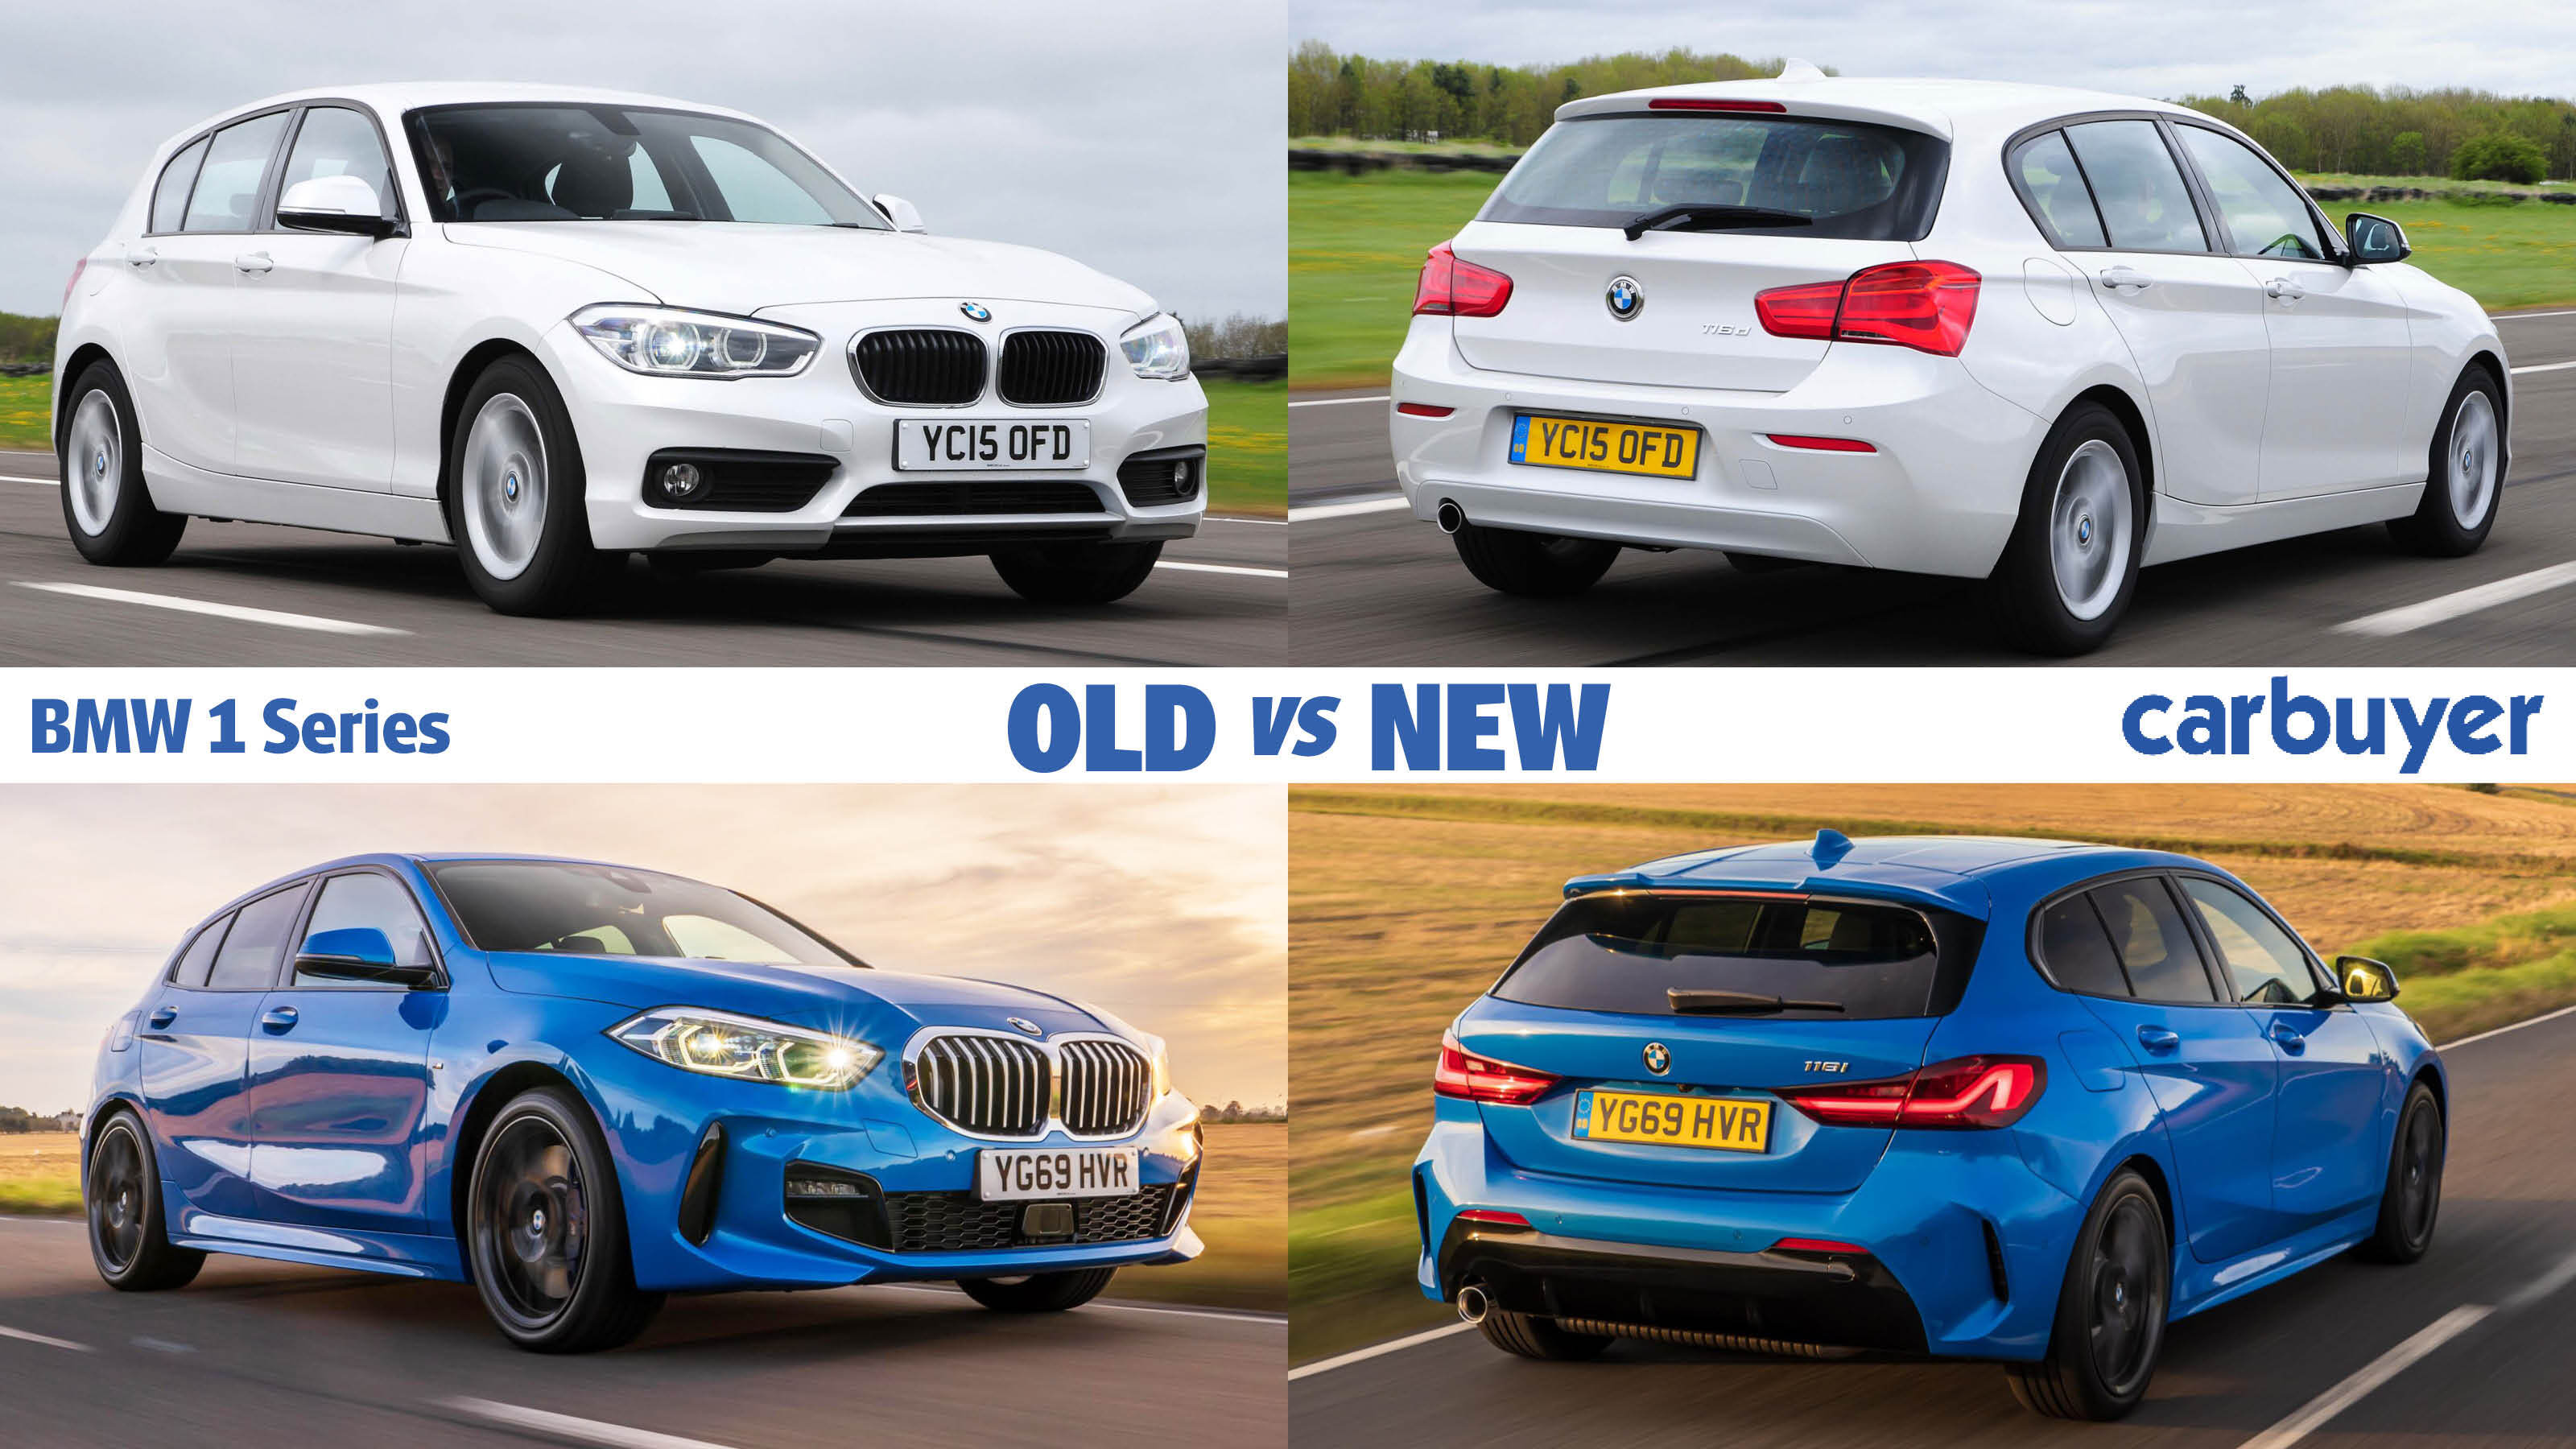 Bmw 1 Series Old Vs New Carbuyer